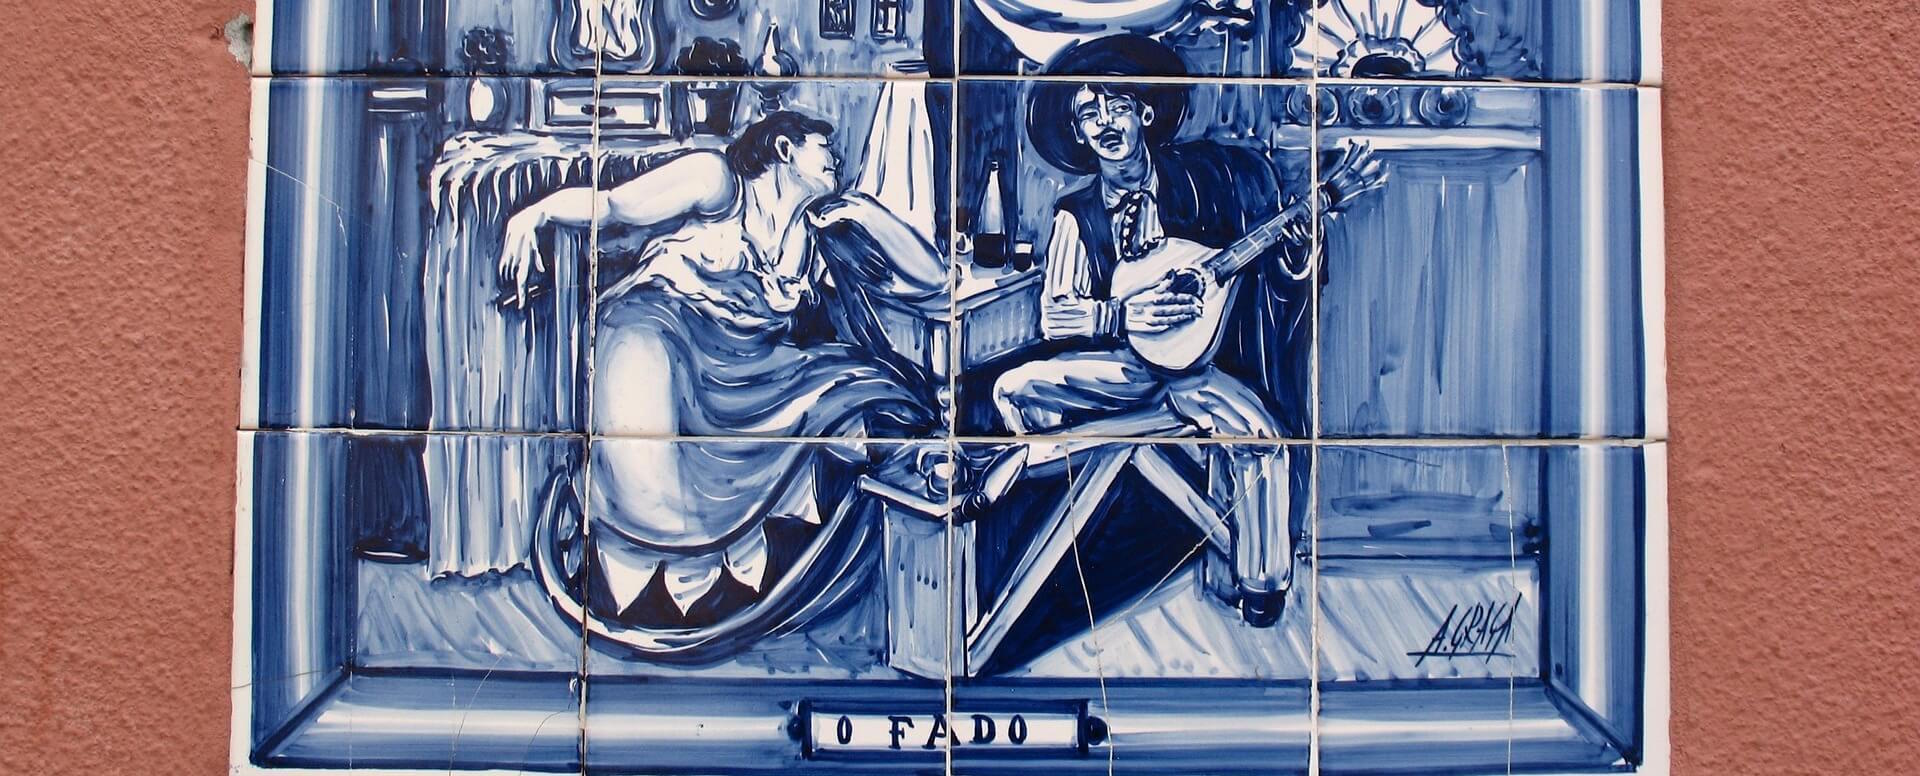 9. Fado: intangible heritage - Portugal